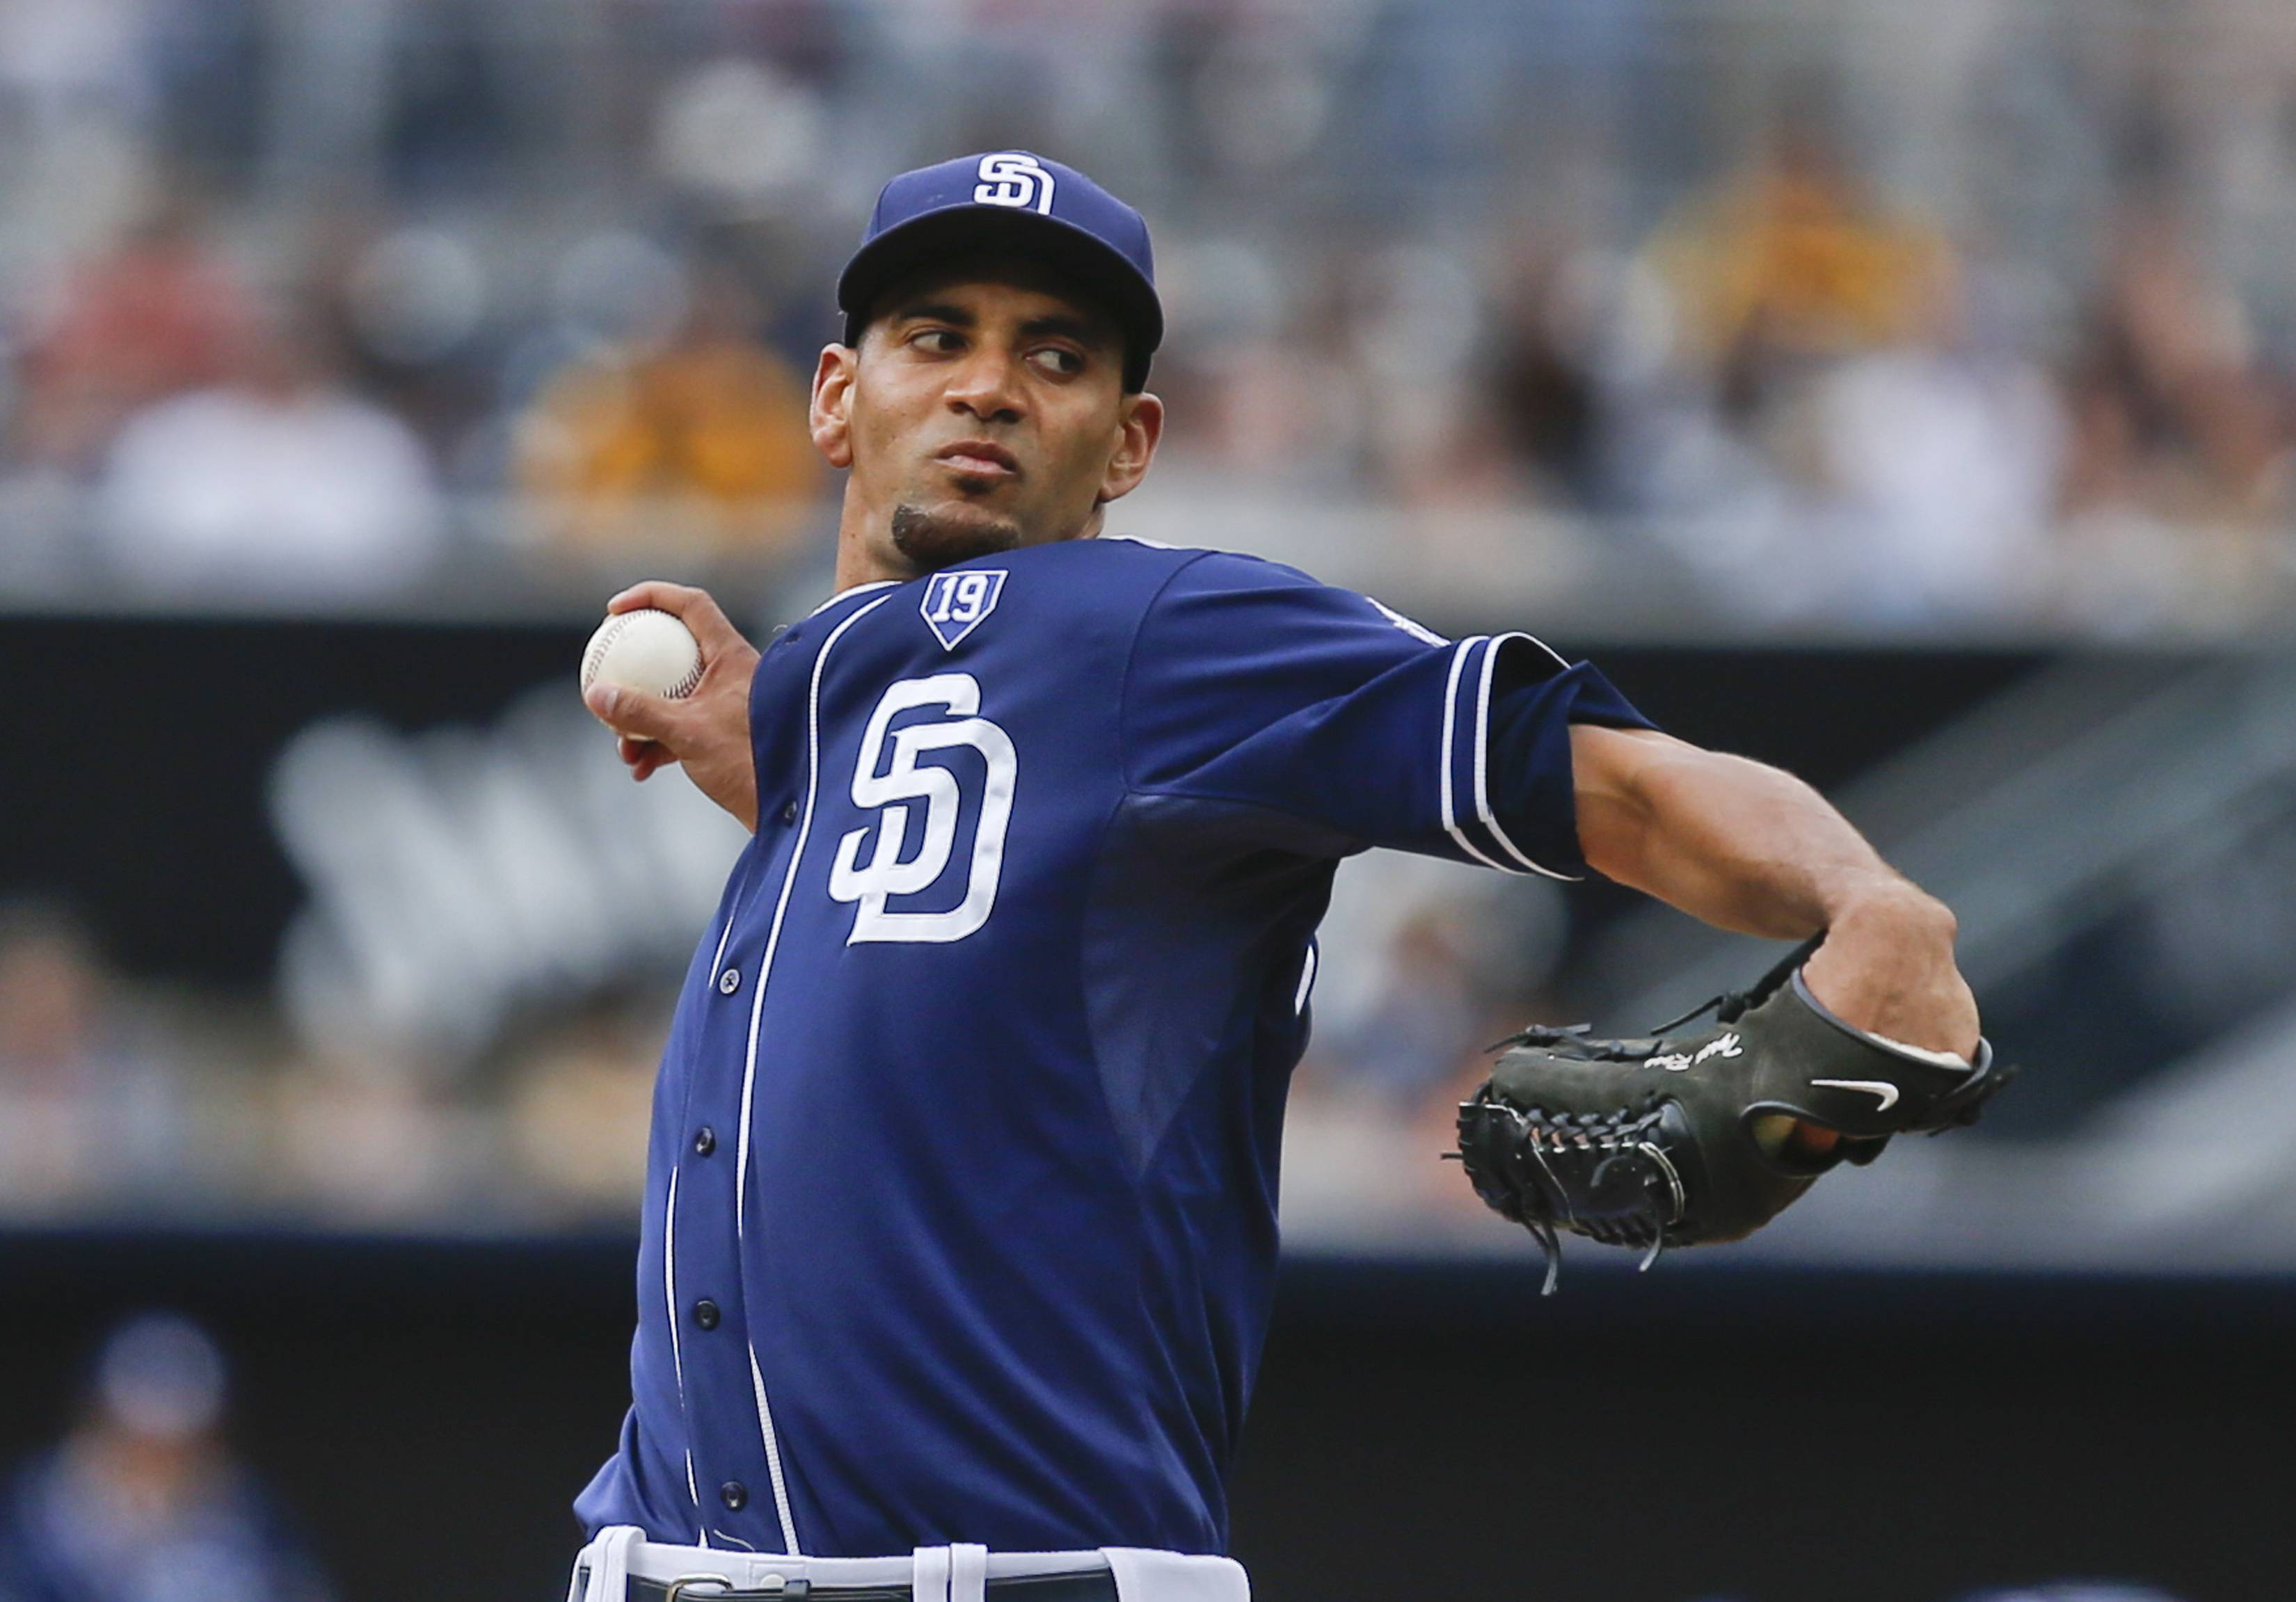 San Diego Padres starting pitcher Tyson Ross throws against the New York Mets in the first inning of a baseball game Saturday, July 19, 2014, in San Diego.